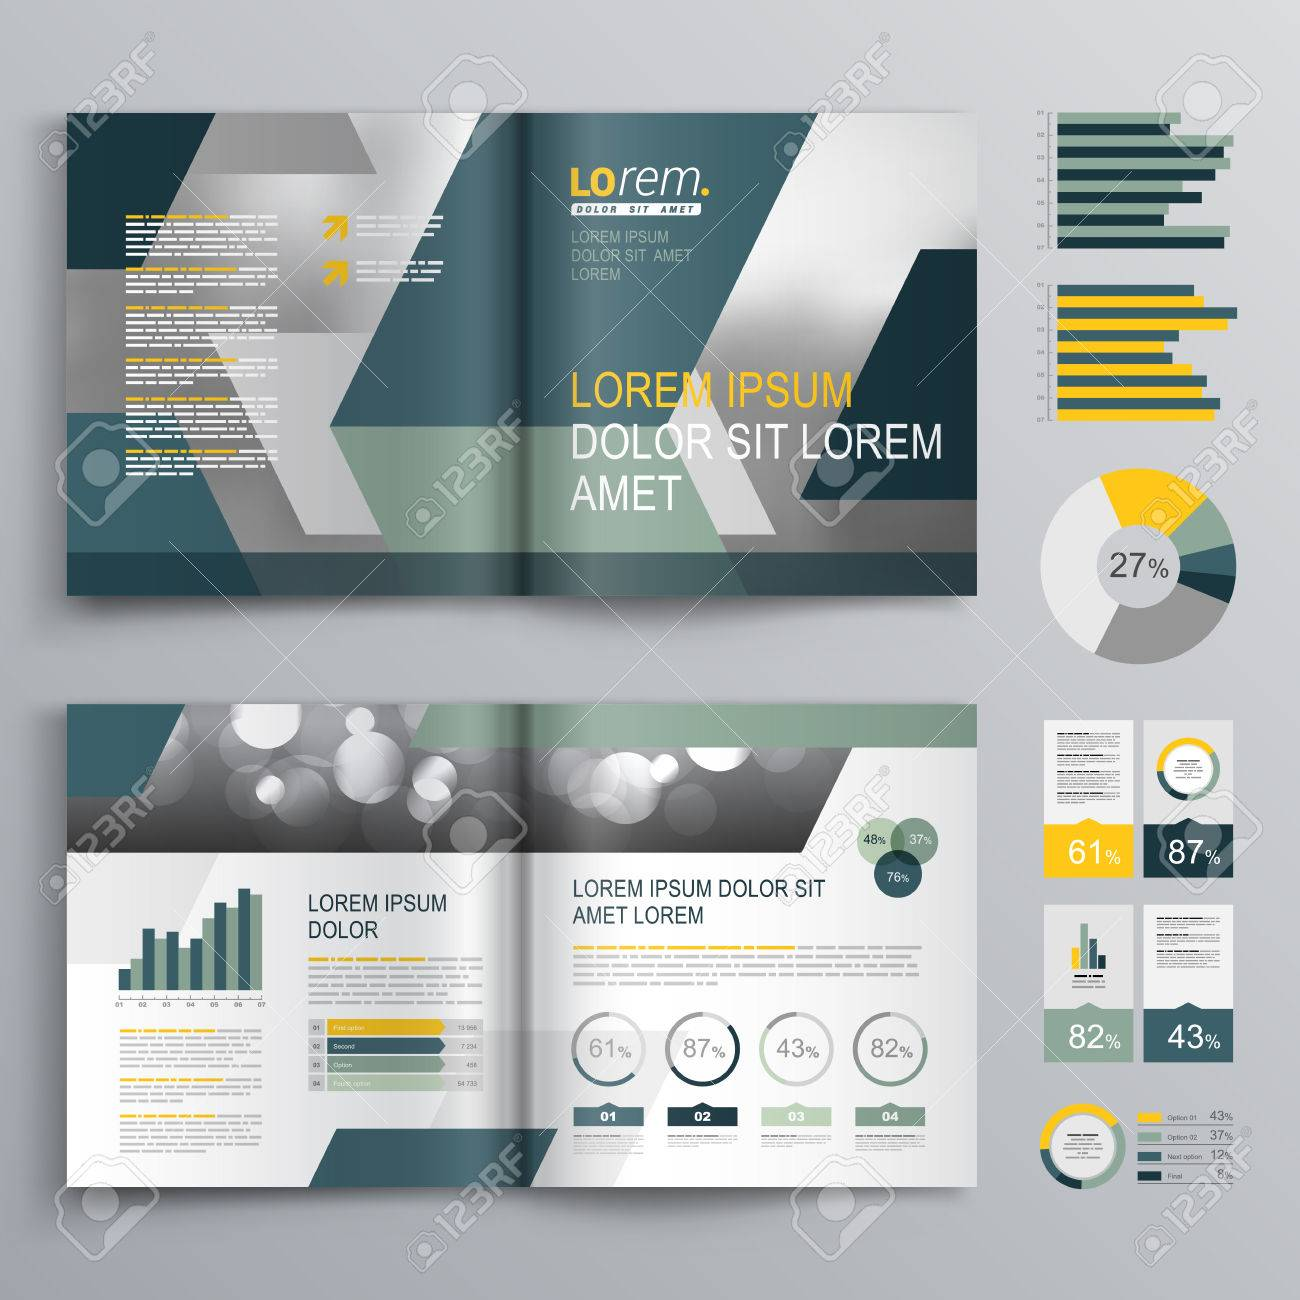 gray brochure template design with blue and green geometric shapes